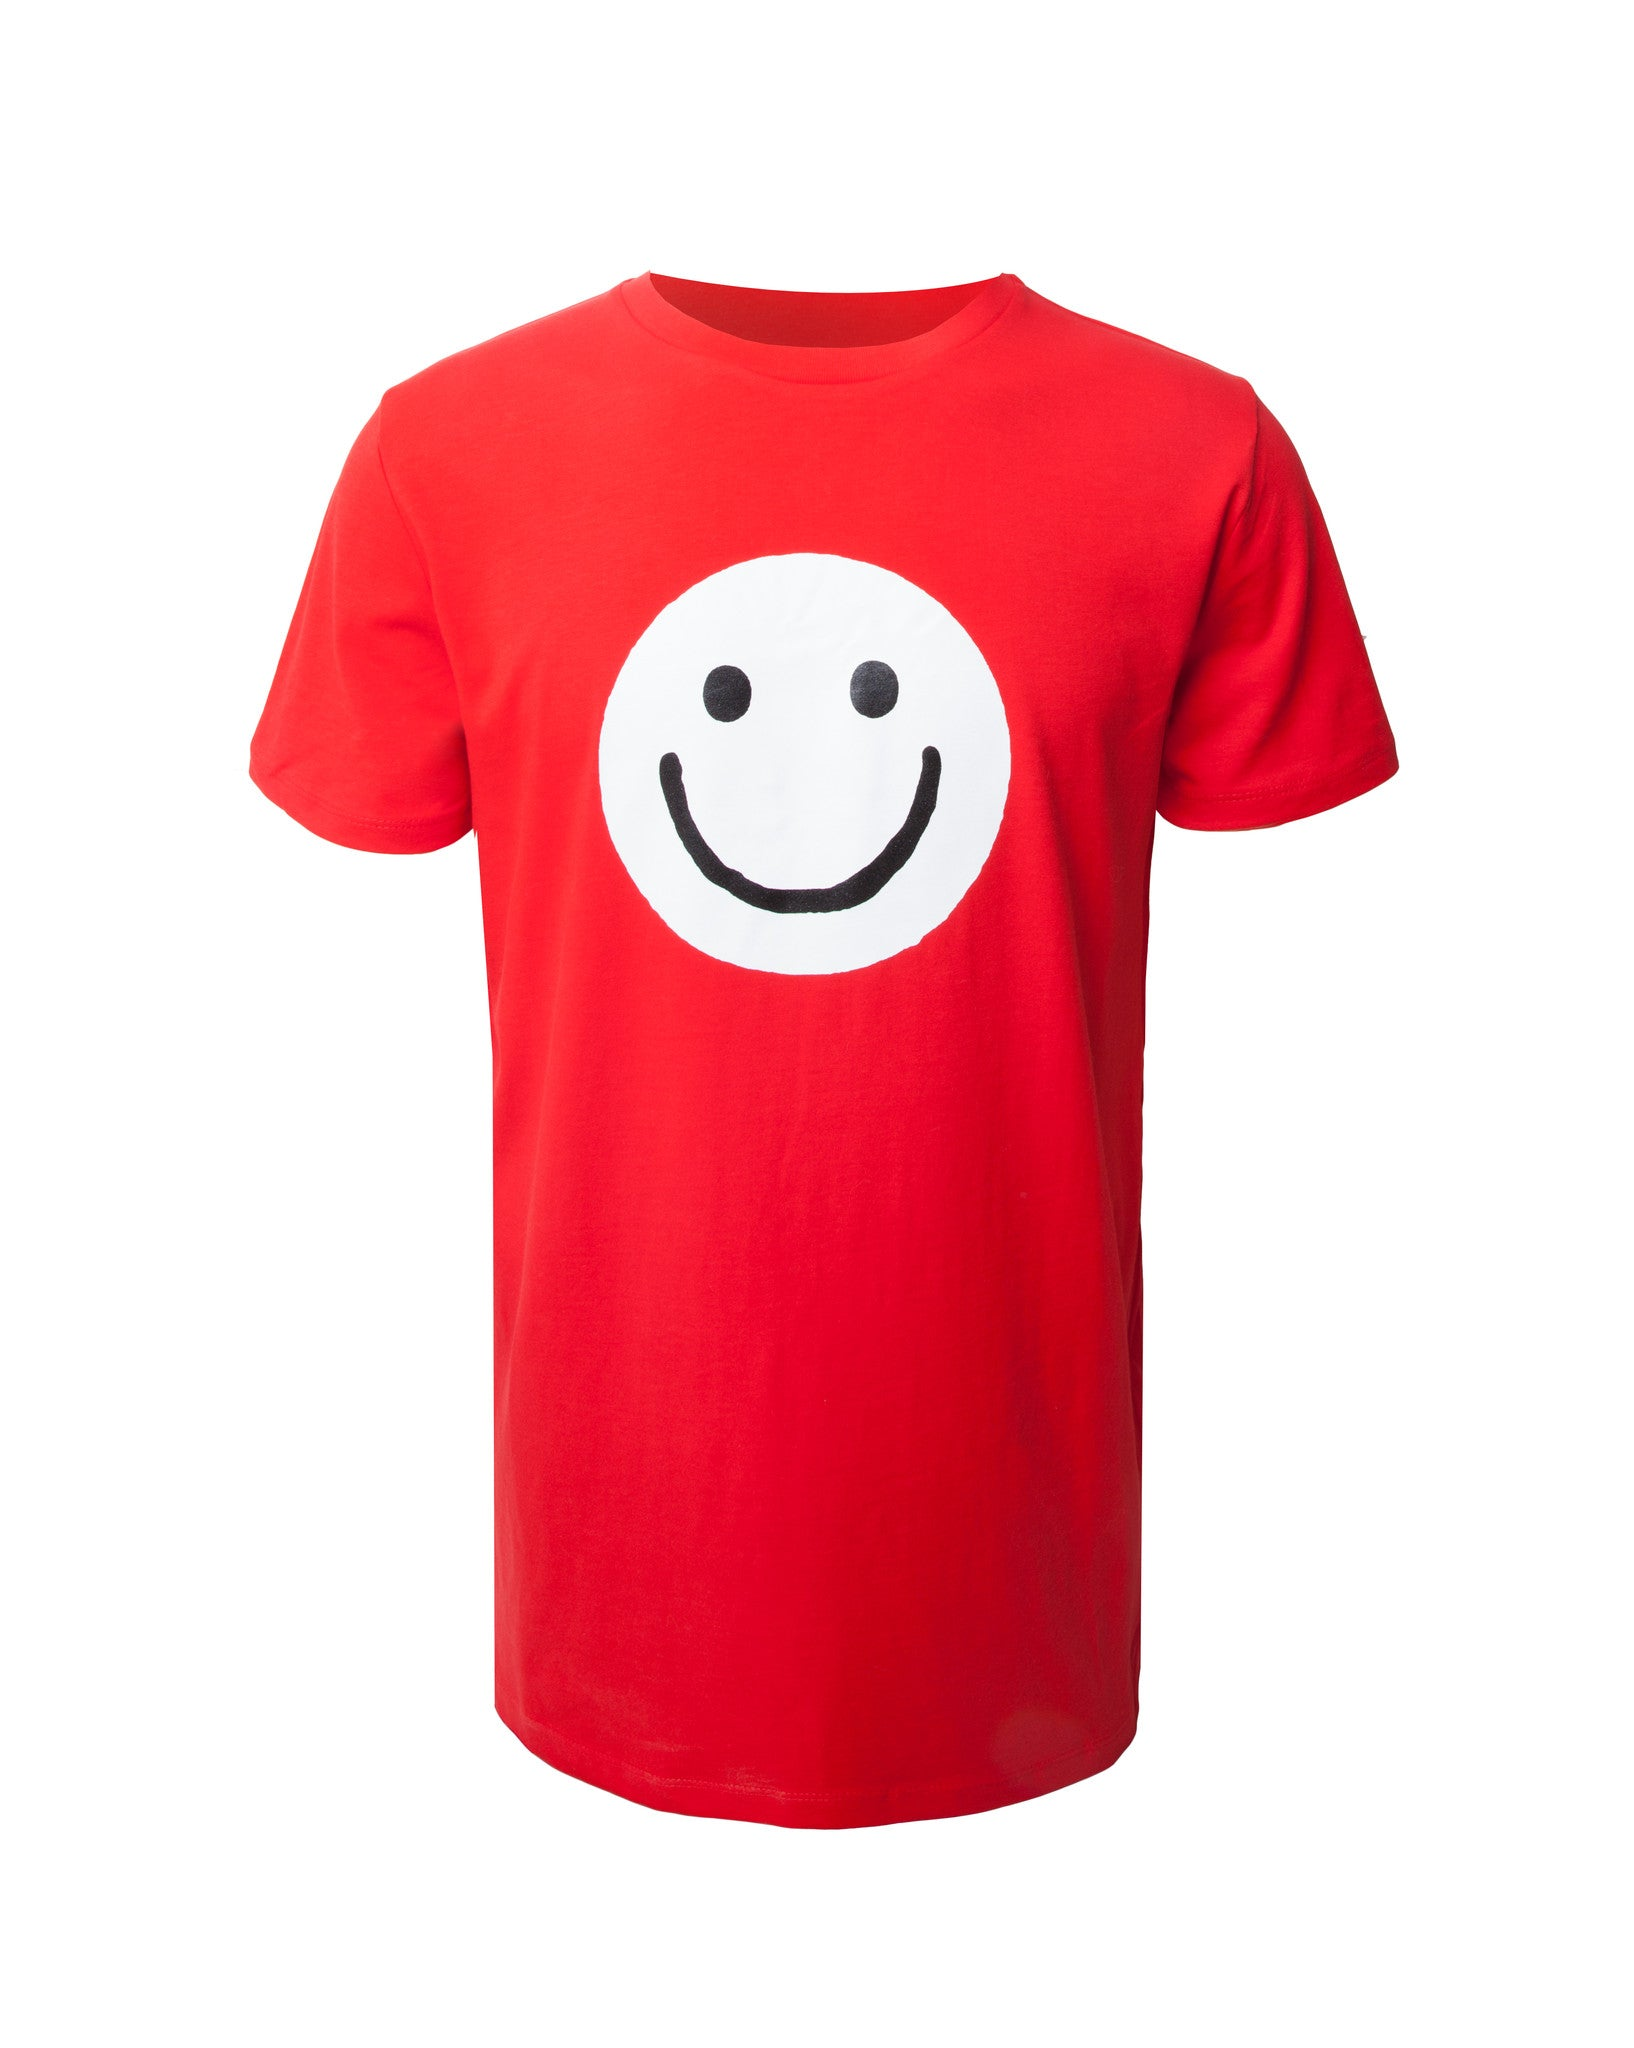 Smiley T-Shirt (Red)